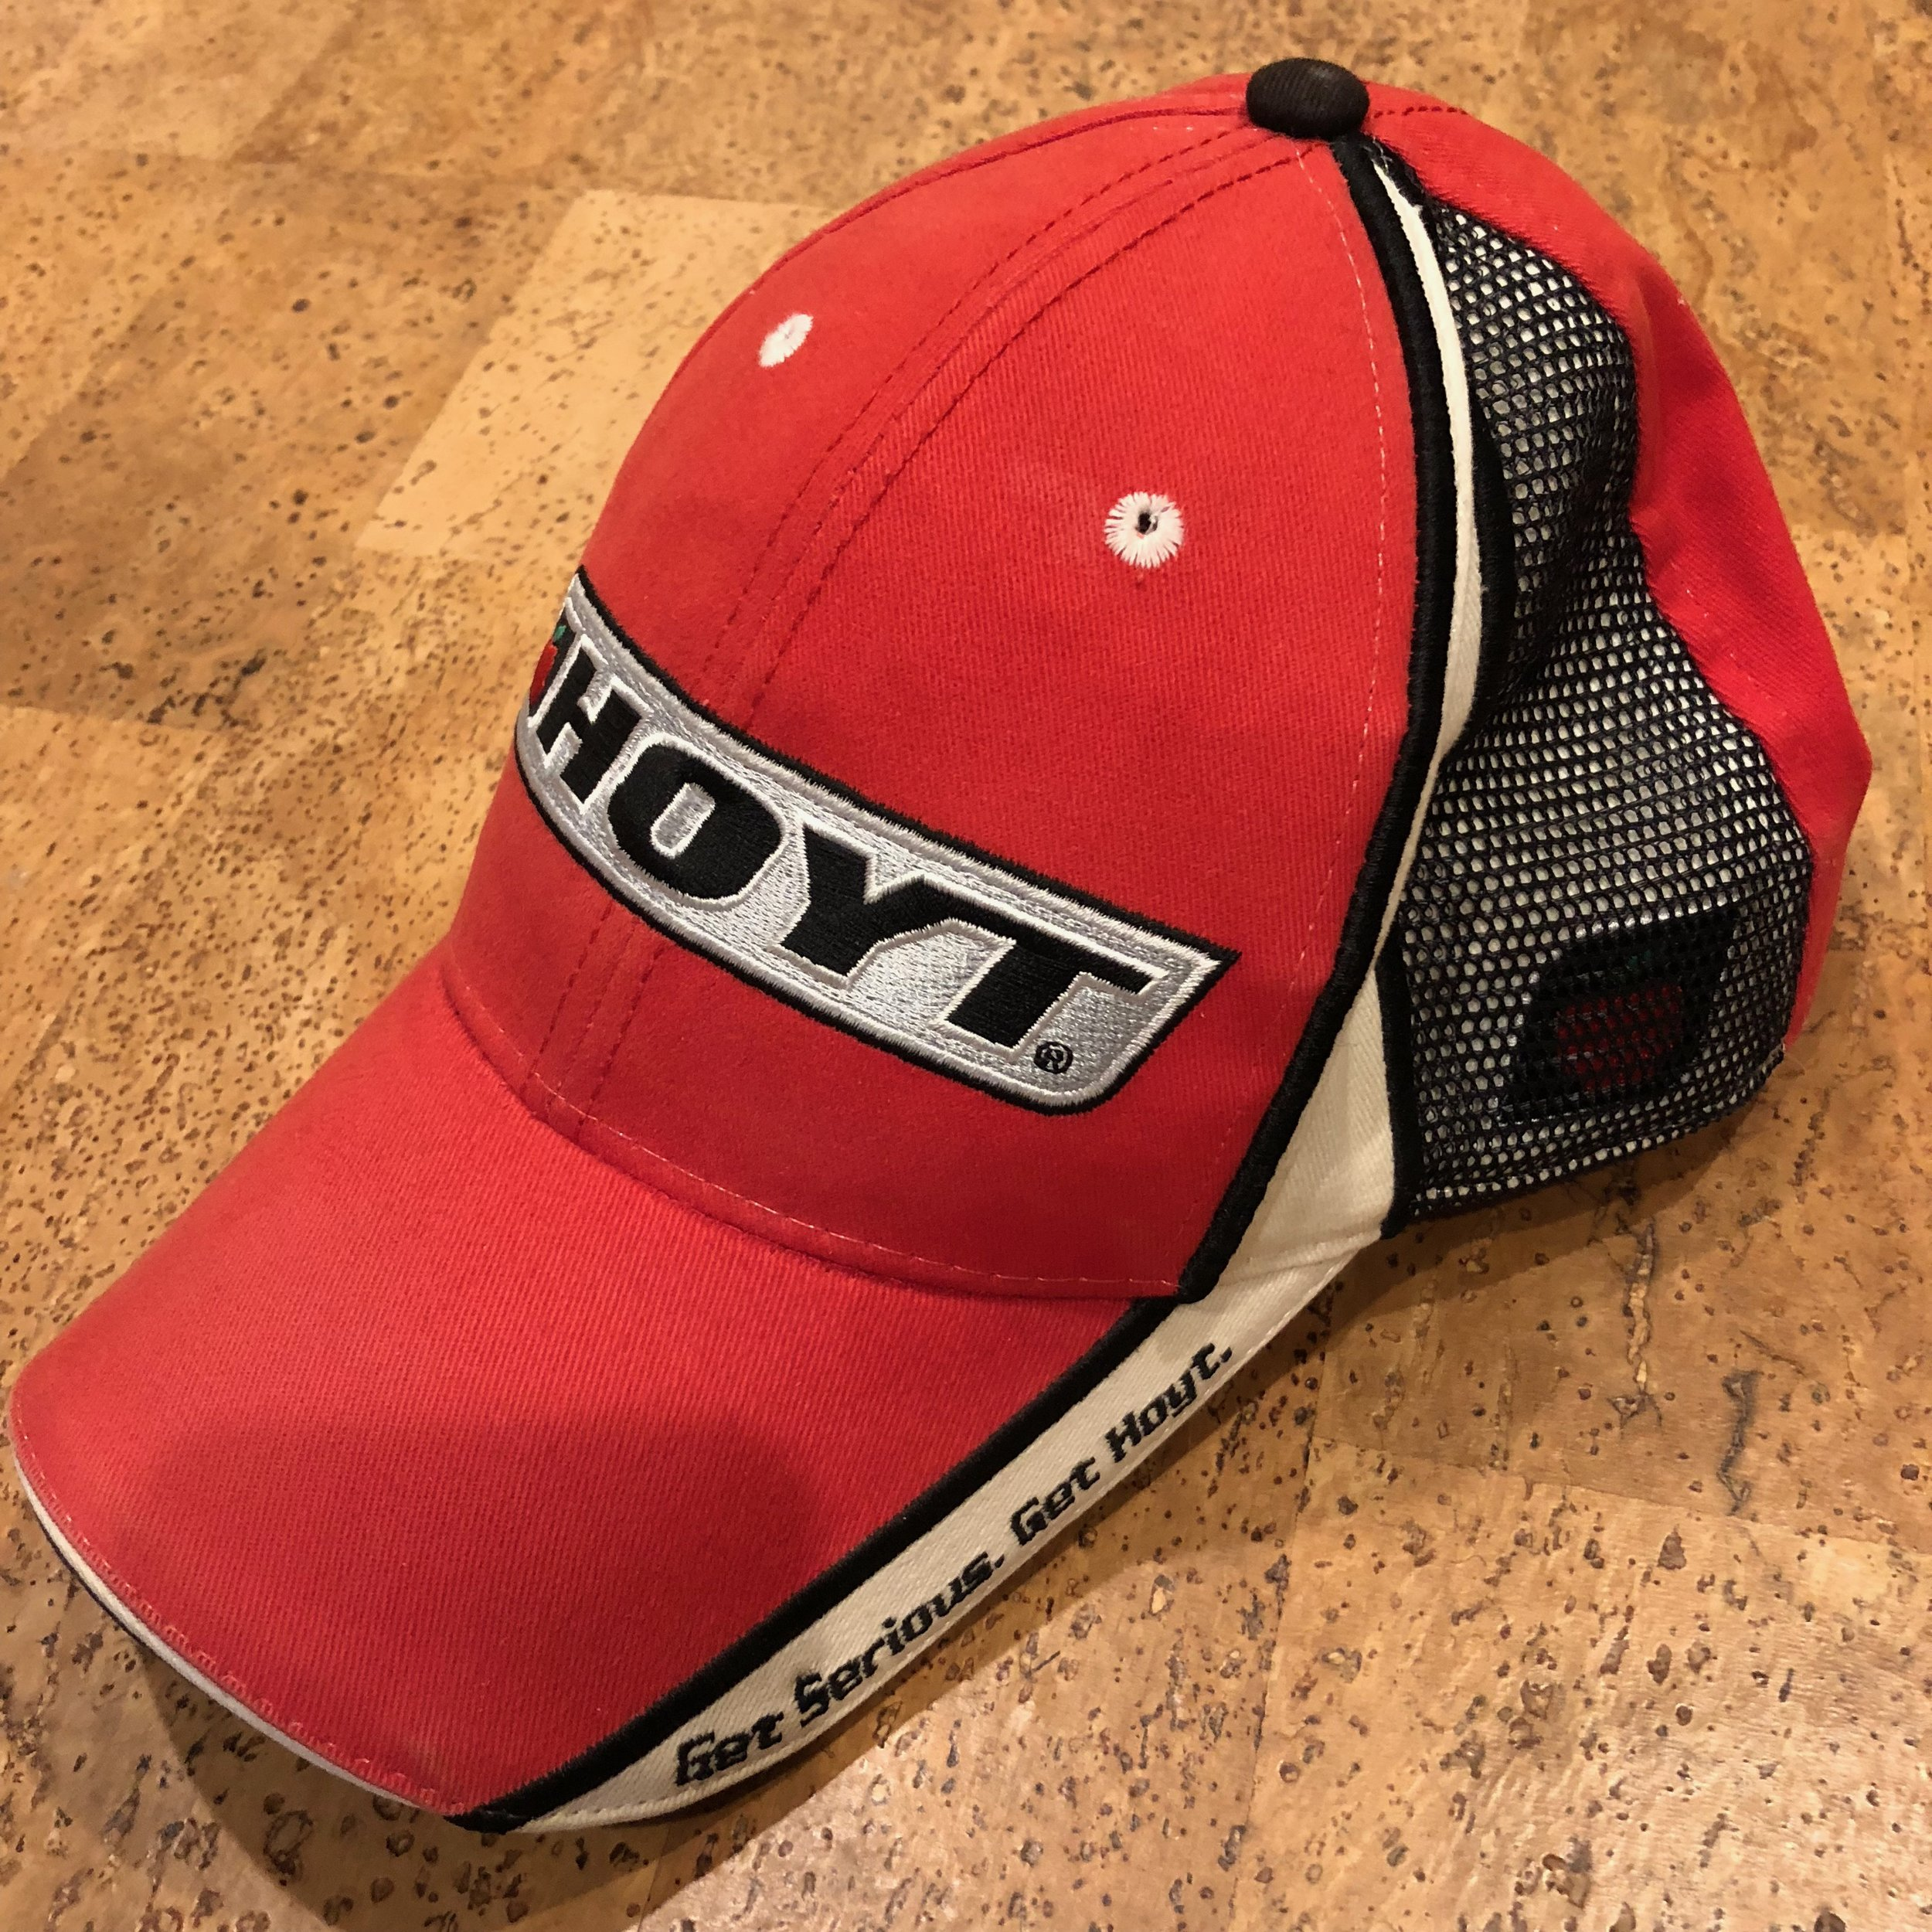 Hoyt hat (Free)   It's a hat. Contact Coach Tim at 612-599-5470.